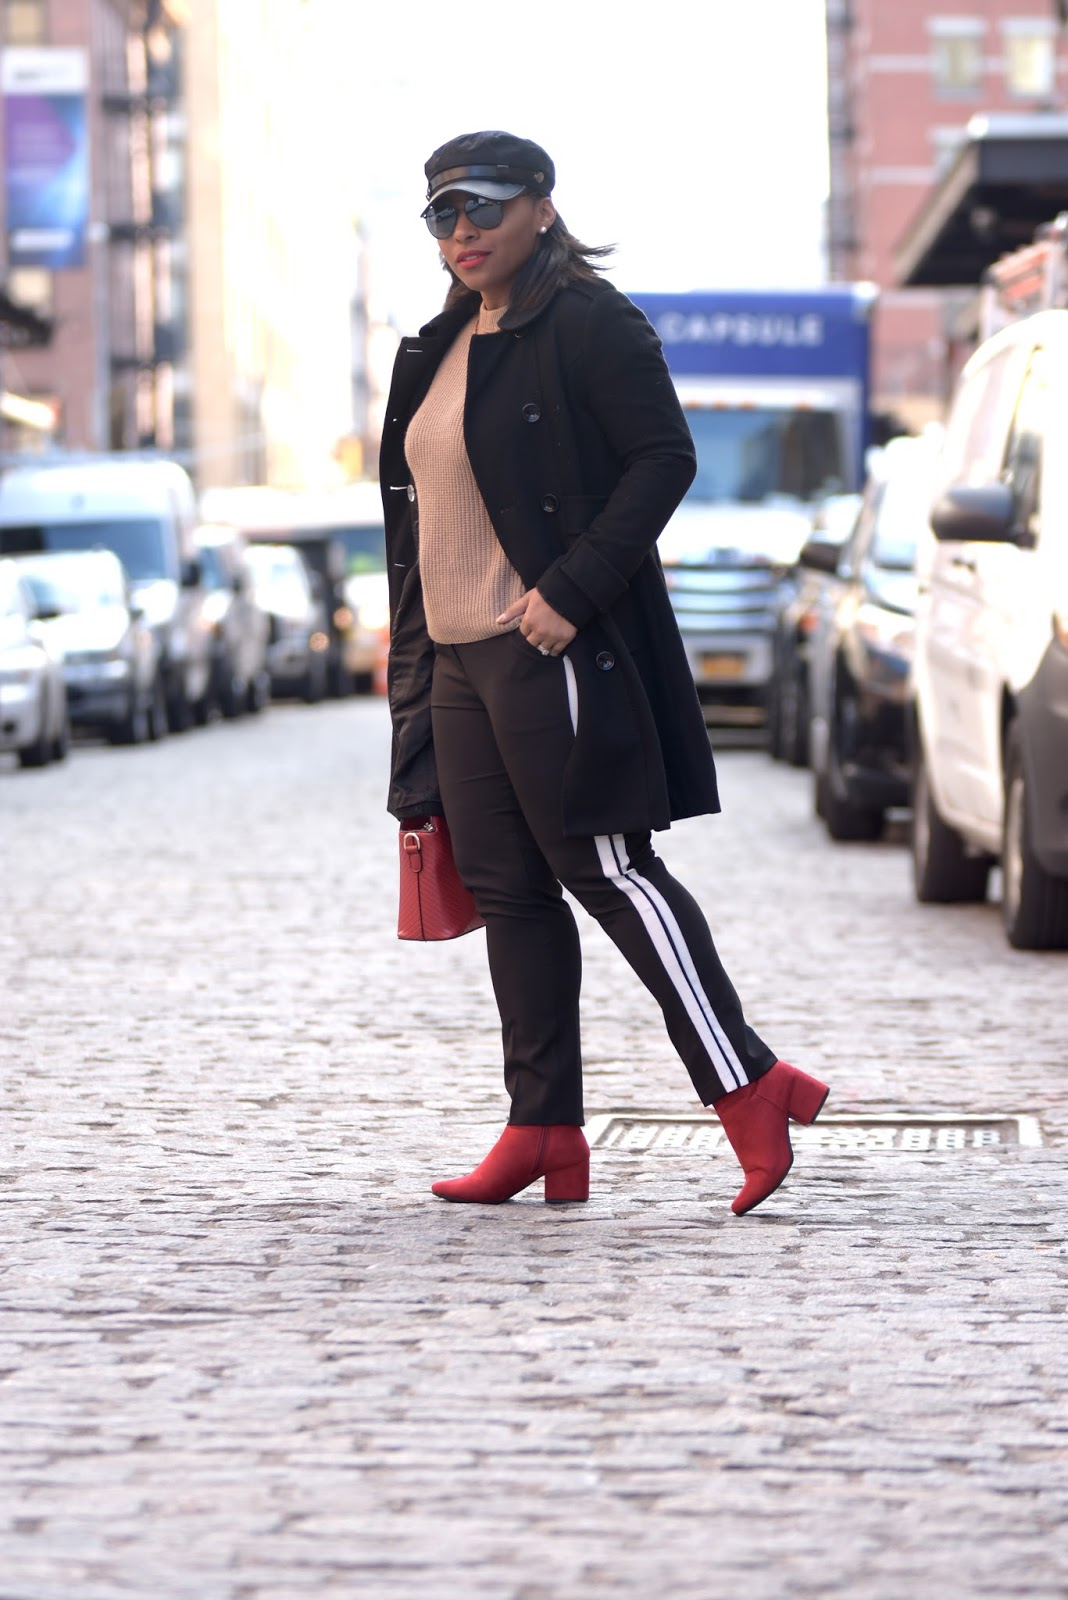 nyfw, nyfw2018, streetstyle, nyfw streetstyle, fashion blogger, fashion week, pregnant fashion